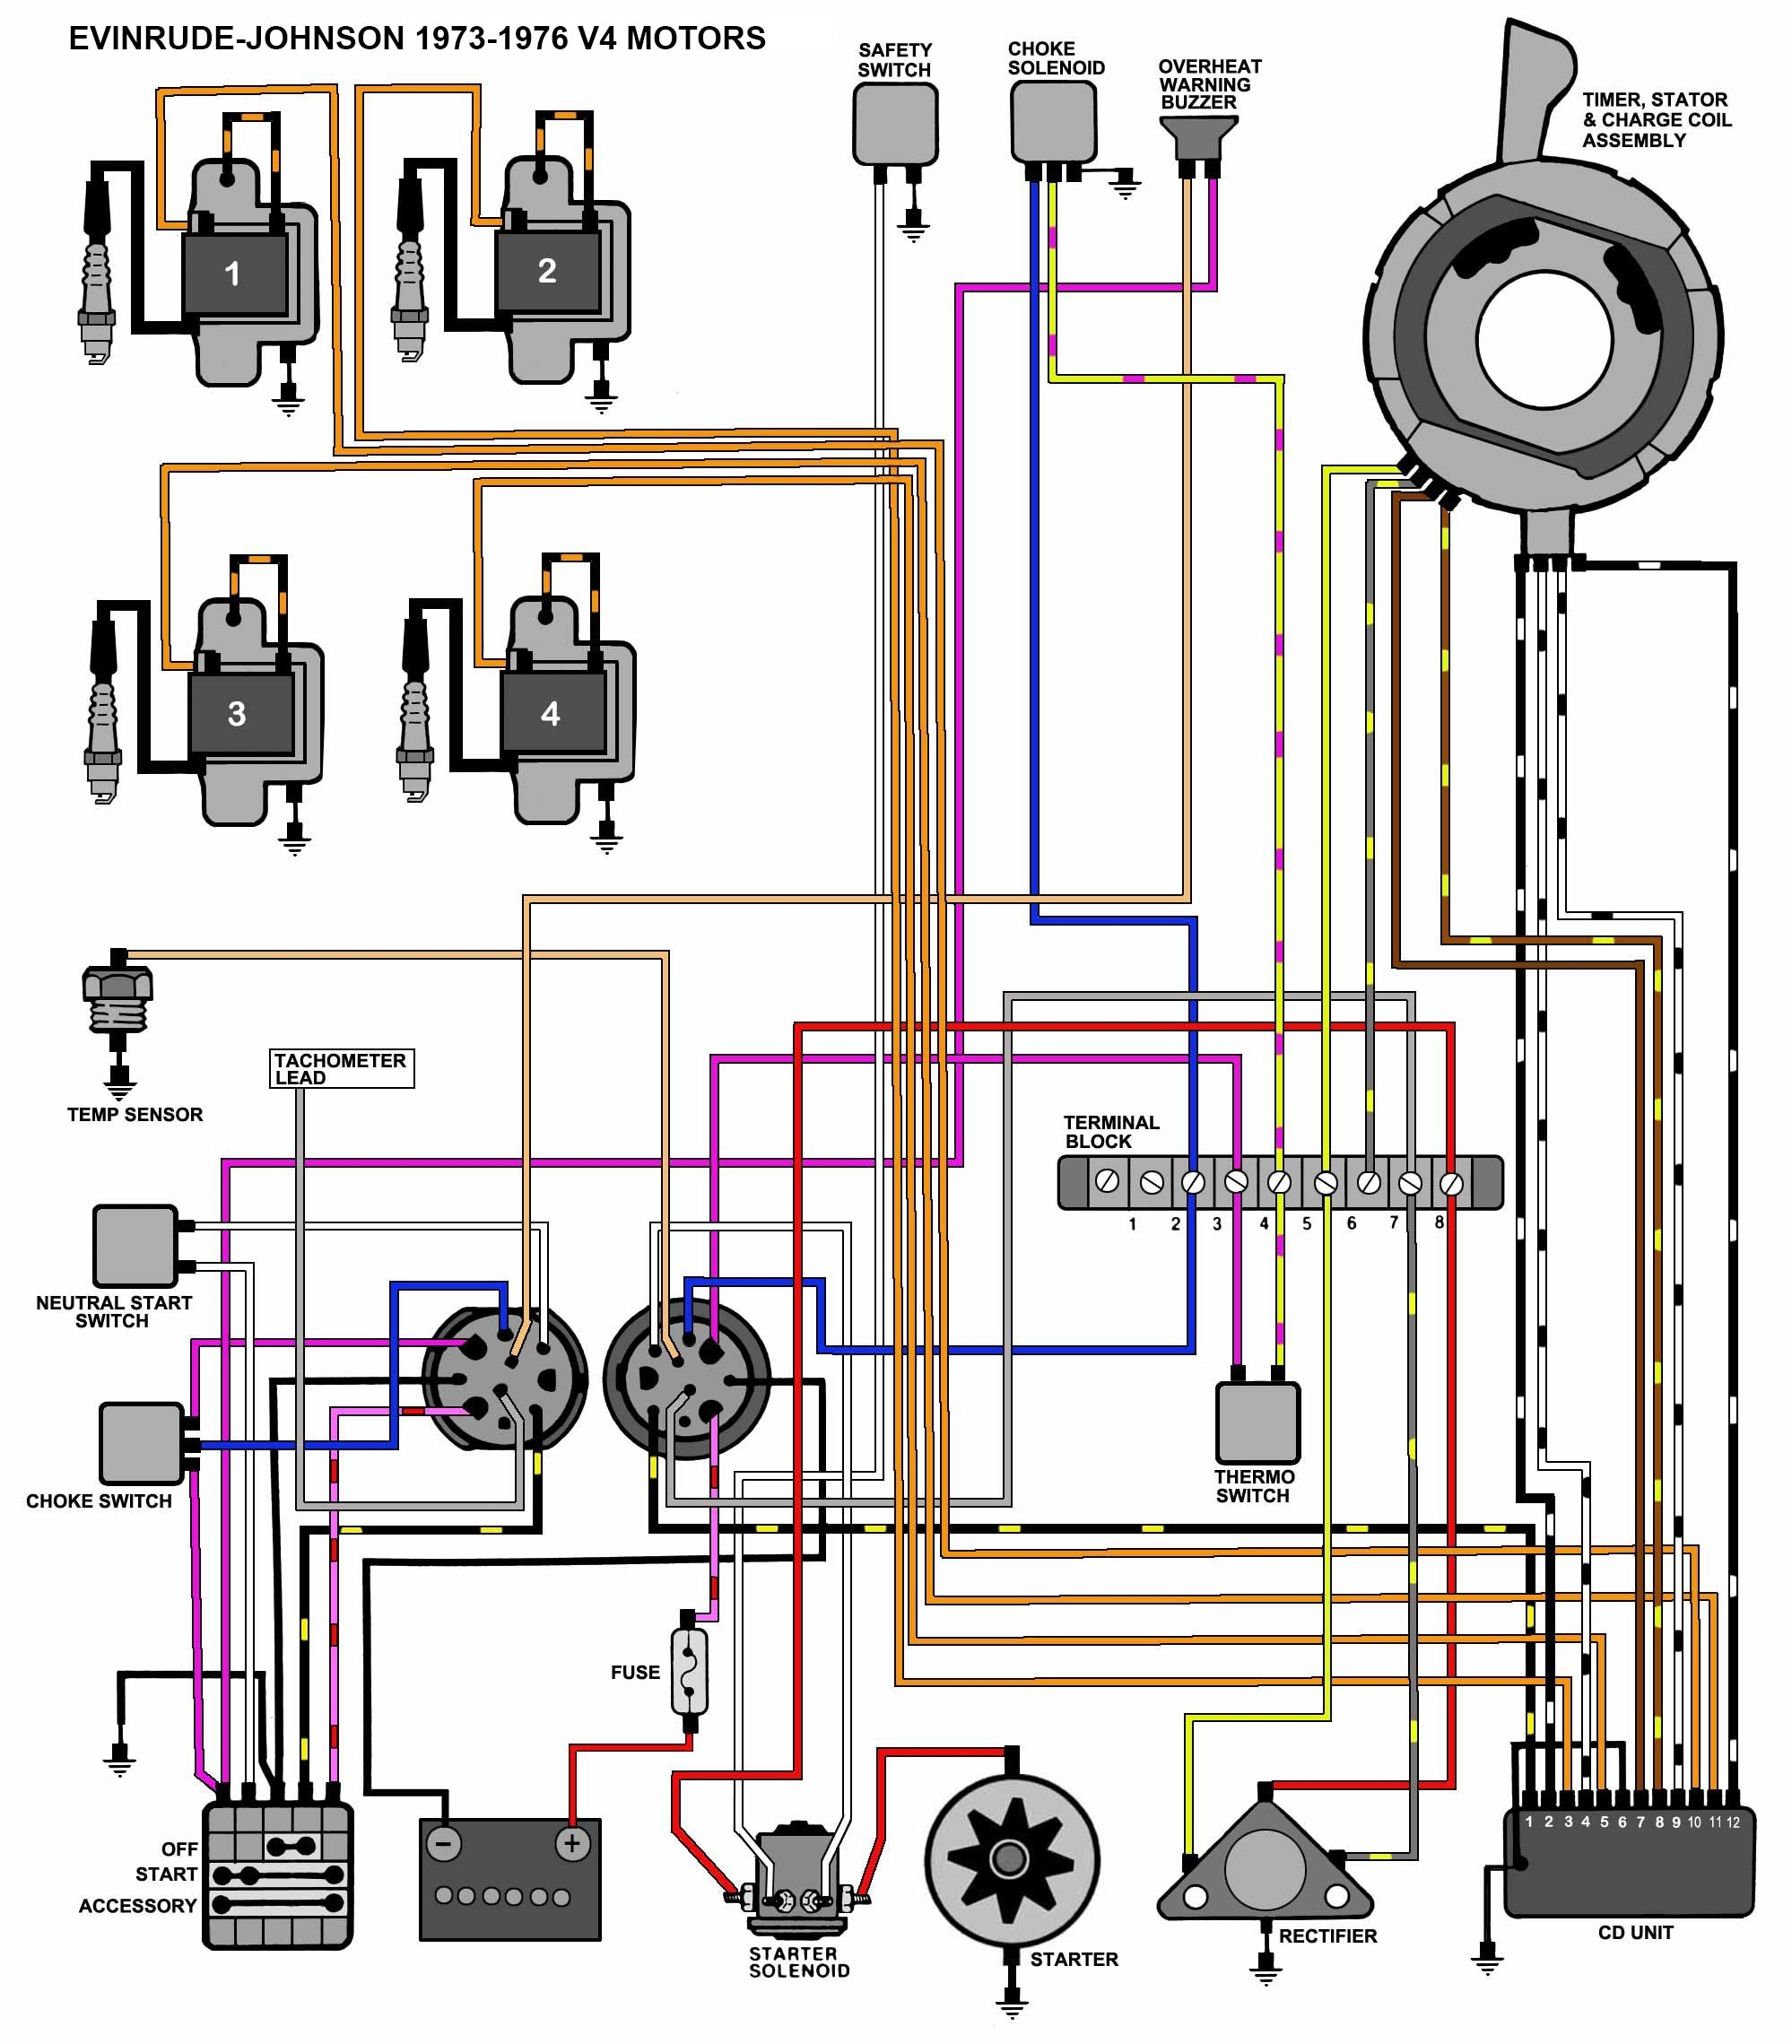 evinrude ignition switch wiring diagram with 1969 omc 55 wiring throughout 70 hp evinrude wiring diagram?resize\\\\\\\\\\\\\\\\\\\\\\\\\\\\\\\=665%2C759\\\\\\\\\\\\\\\\\\\\\\\\\\\\\\\&ssl\\\\\\\\\\\\\\\\\\\\\\\\\\\\\\\=1 1999 70 hp evinrude wiring diagram wiring diagram simonand hp wiring diagram for pavilion at reclaimingppi.co